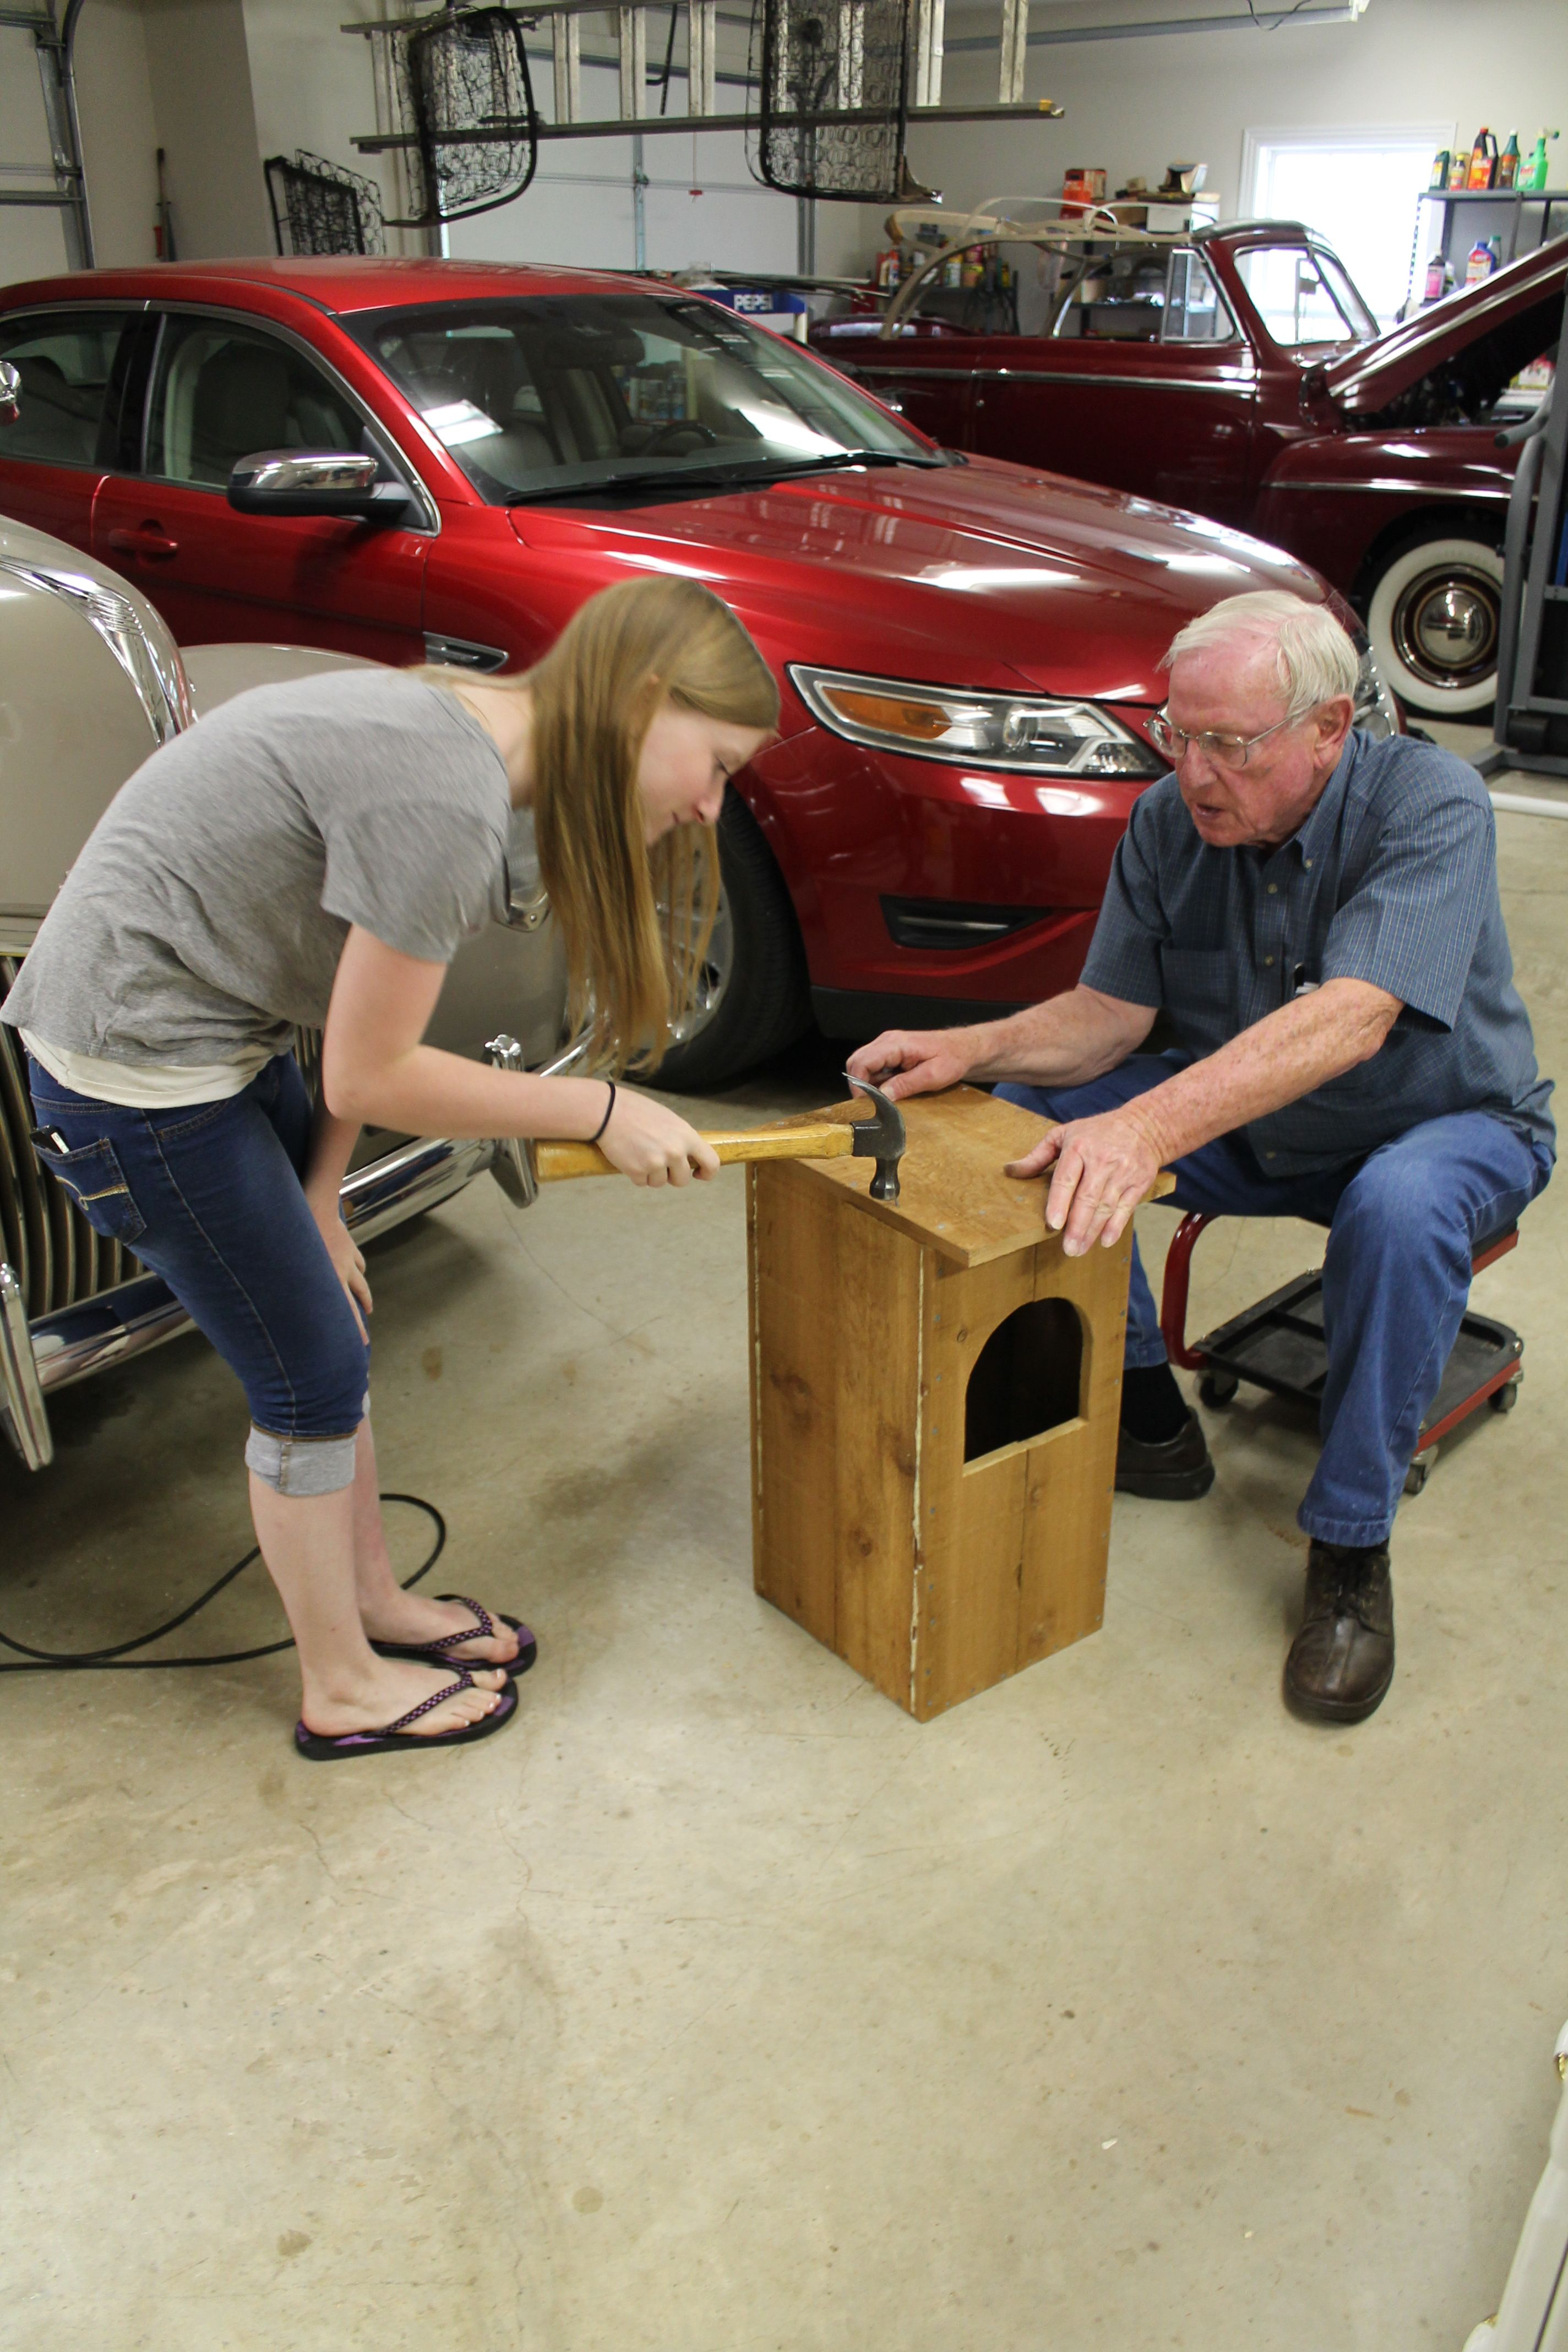 rachel and her grandpa built an owl house for part of her girl scout